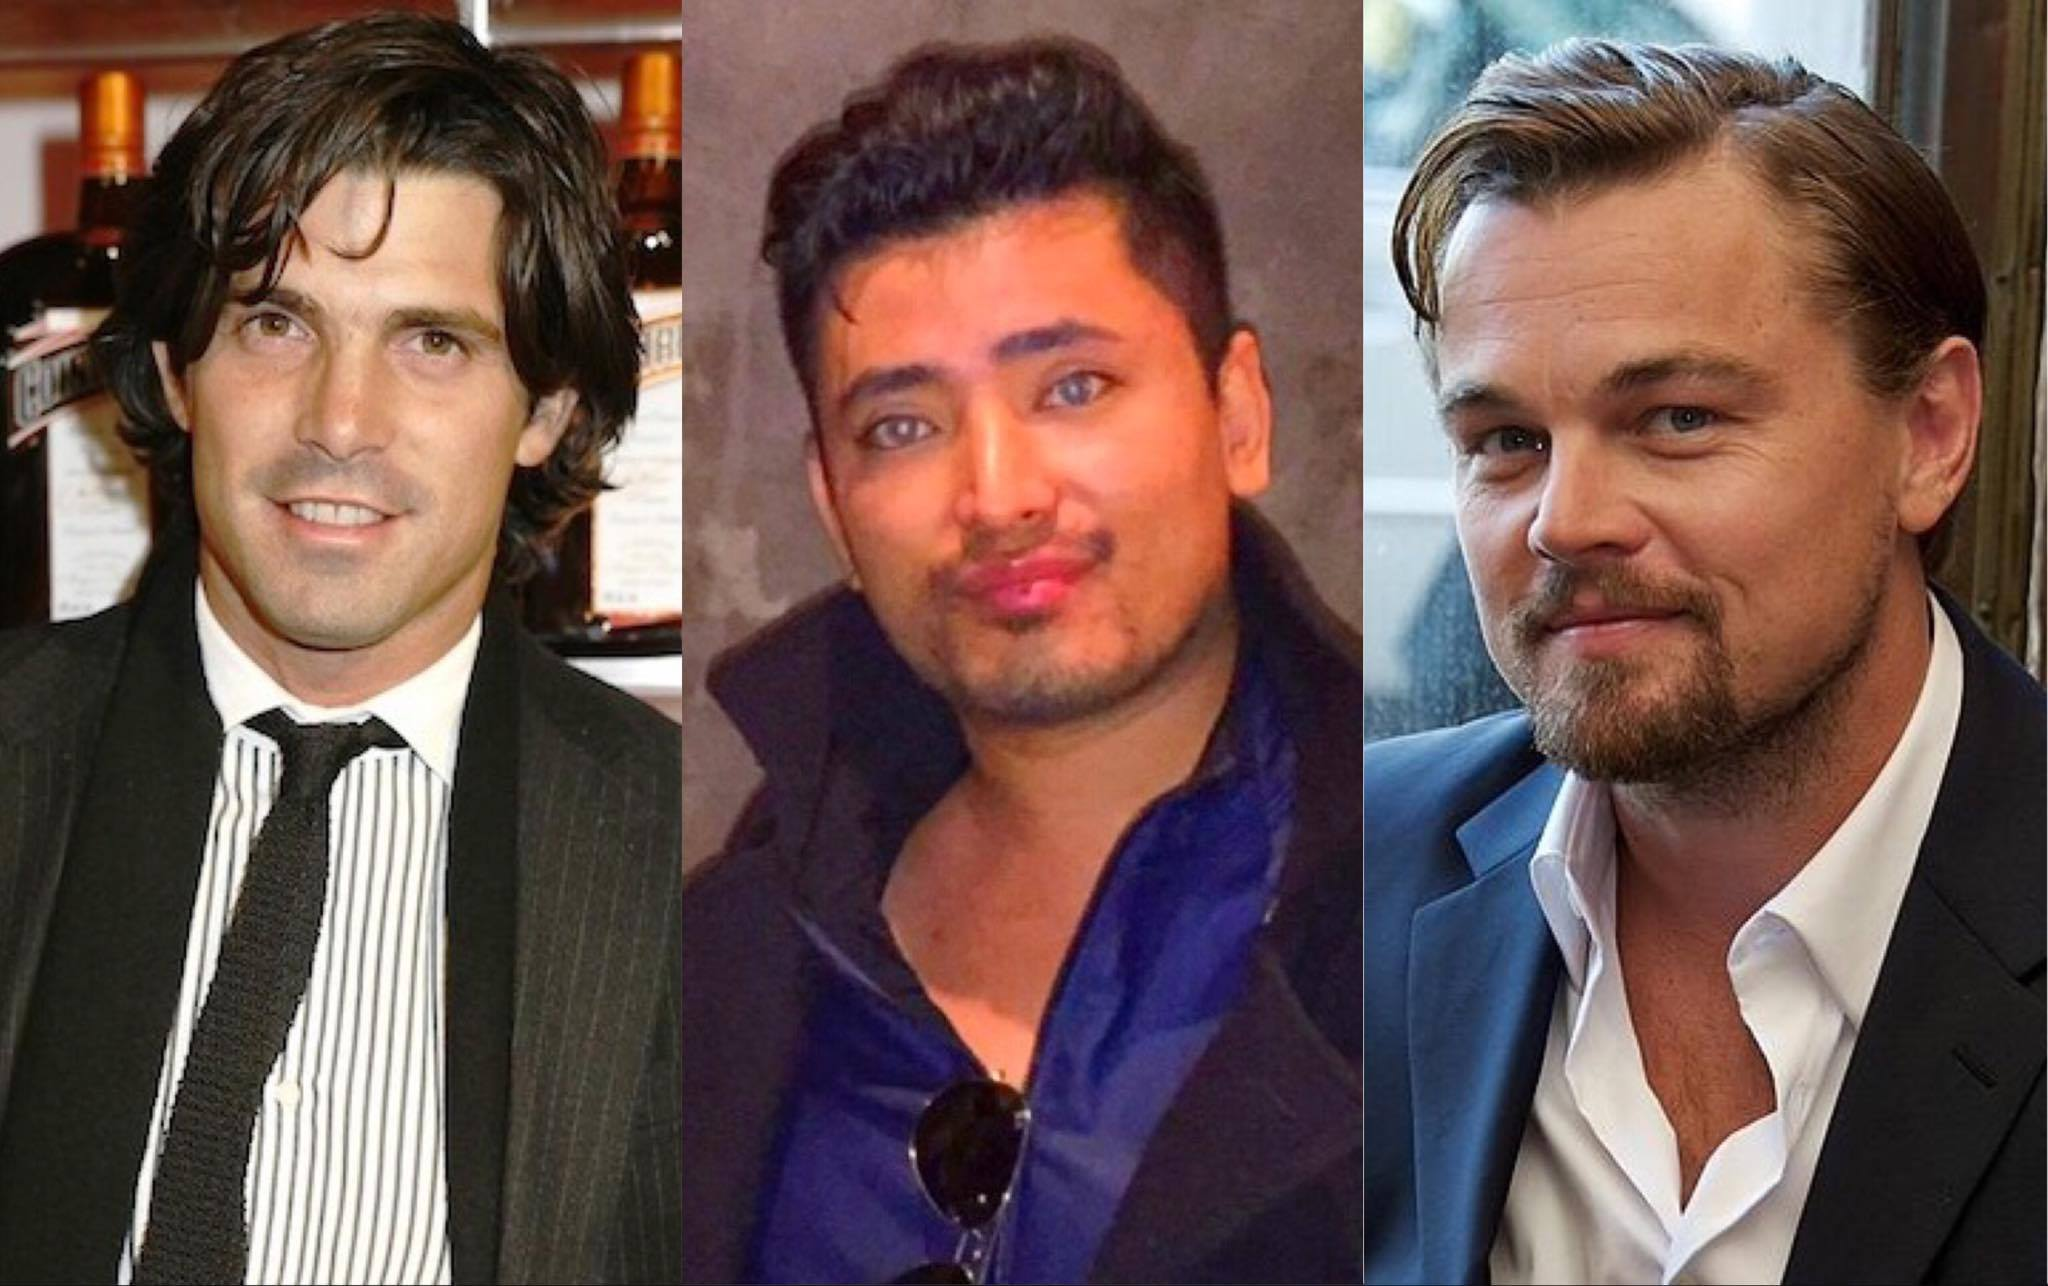 Influential Personalities regularly seen at The Plaza Hotel: (from left to right) International Polo Player Nacho Figueras, Global Luxury Brand Ambassador Pritan Ambroase, Academy Award Winner Leonardo DiCaprio